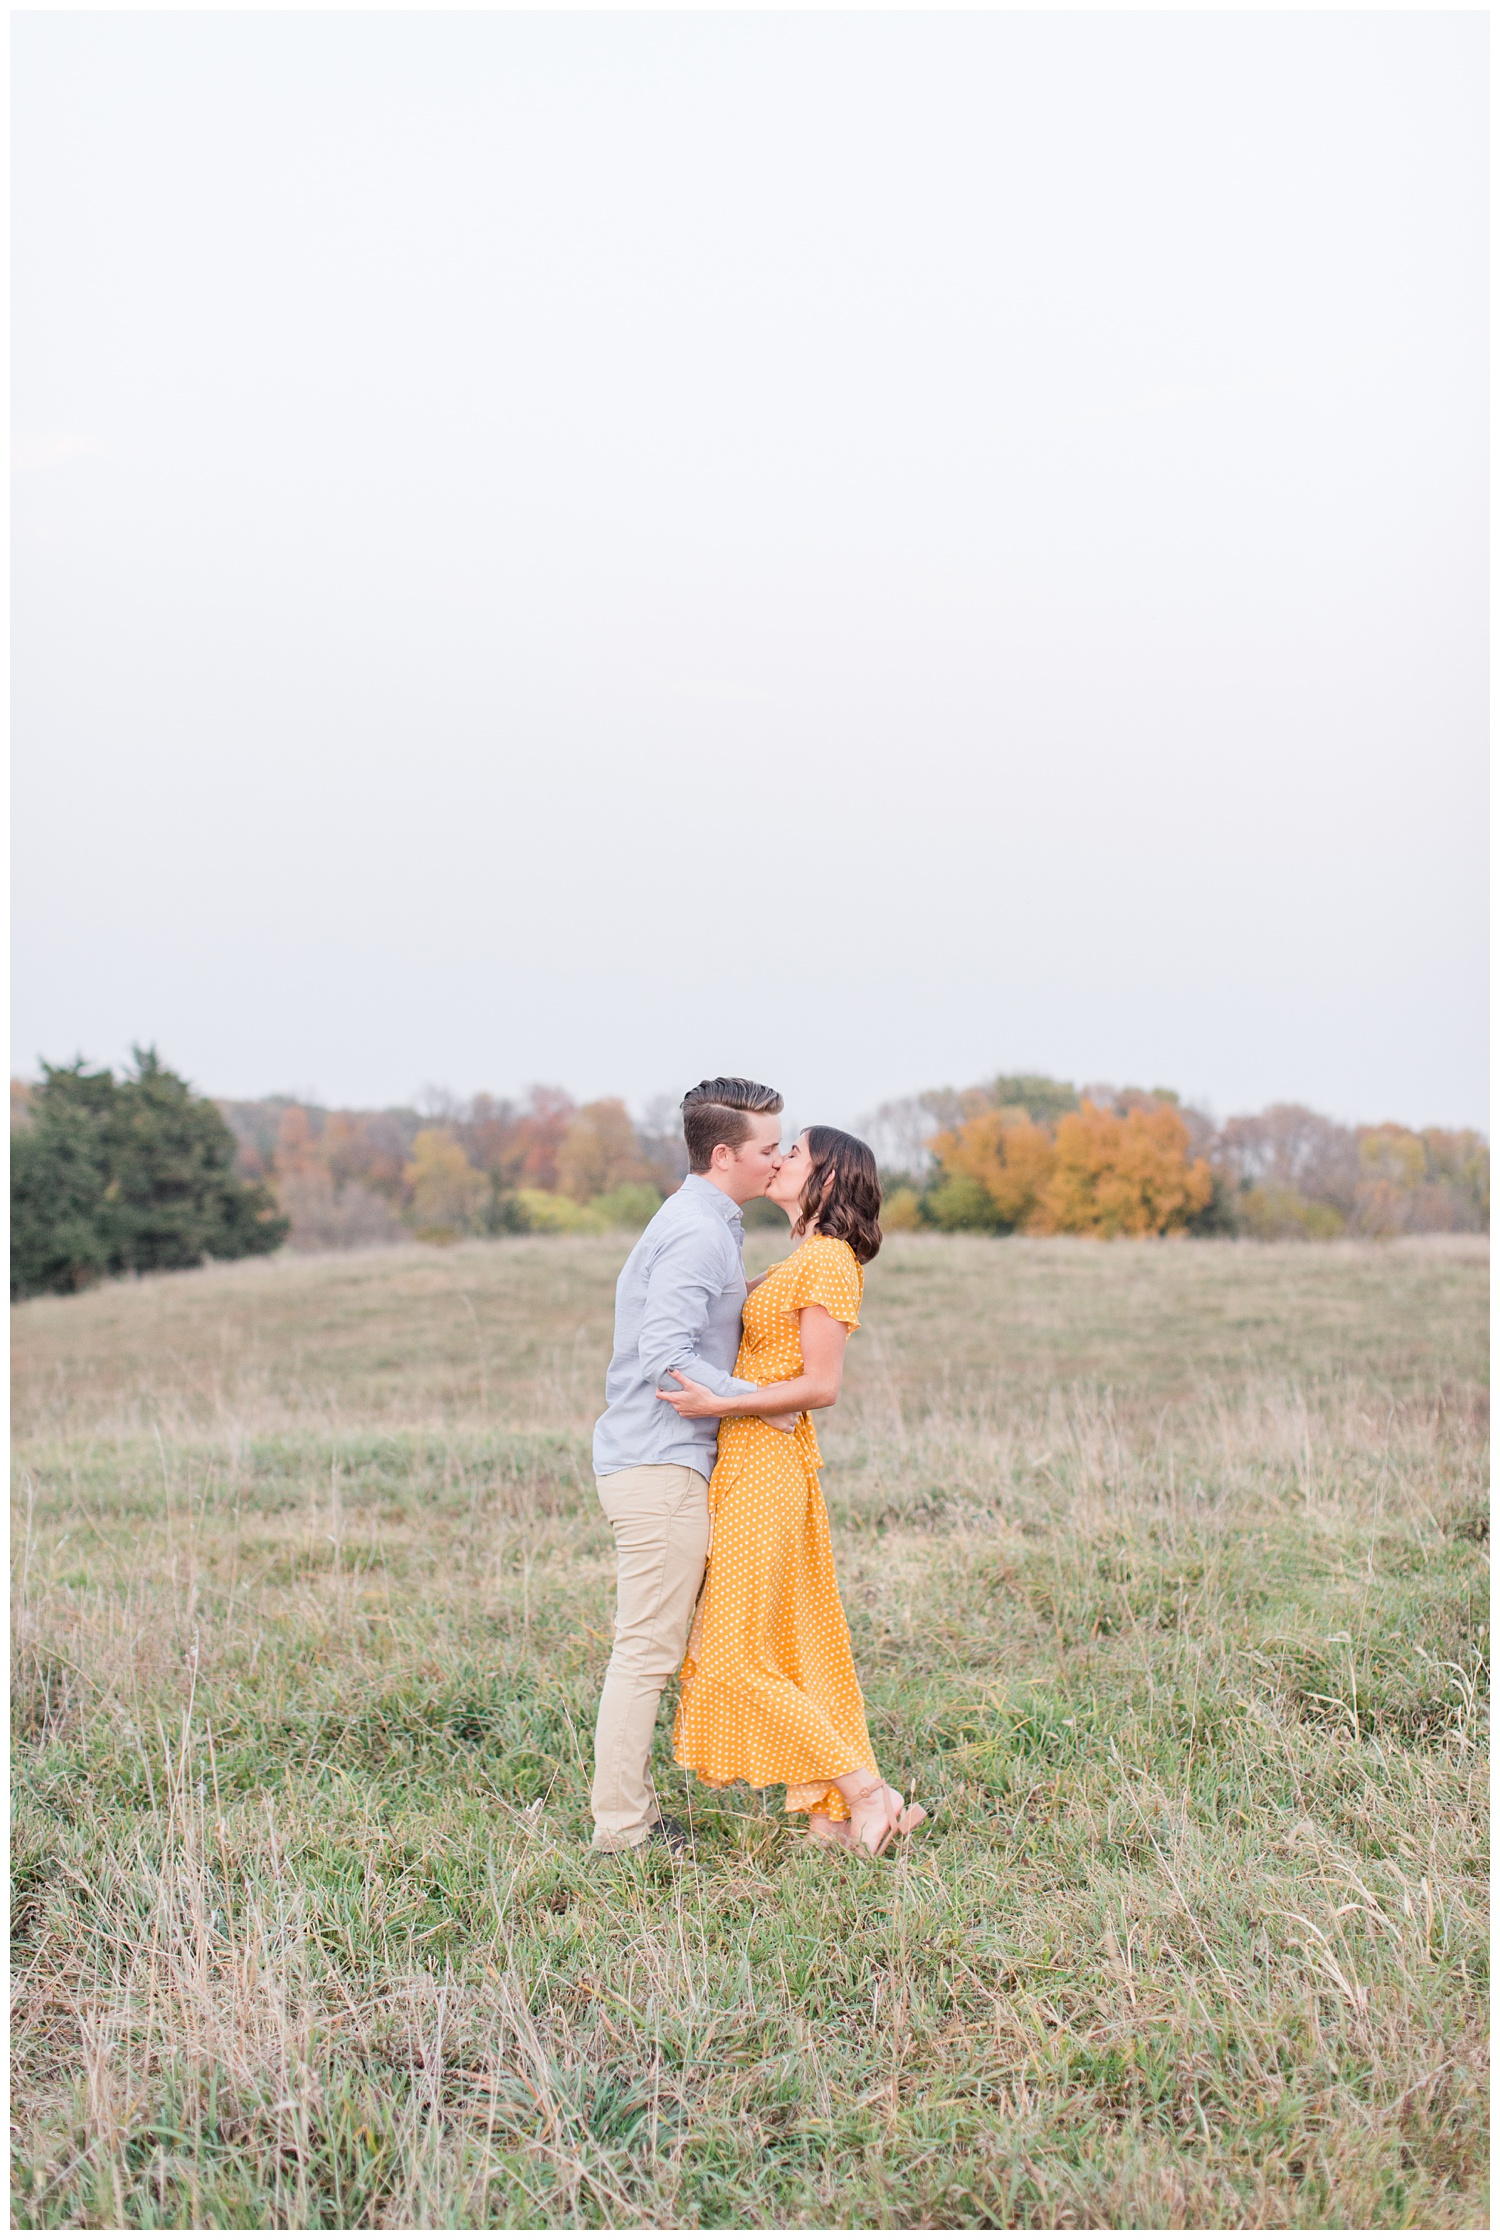 Jadi wearing a yellow flowing dress kisses Luke while embracing together in a grassy field in Iowa during the fall for engagement photos | CB Studio